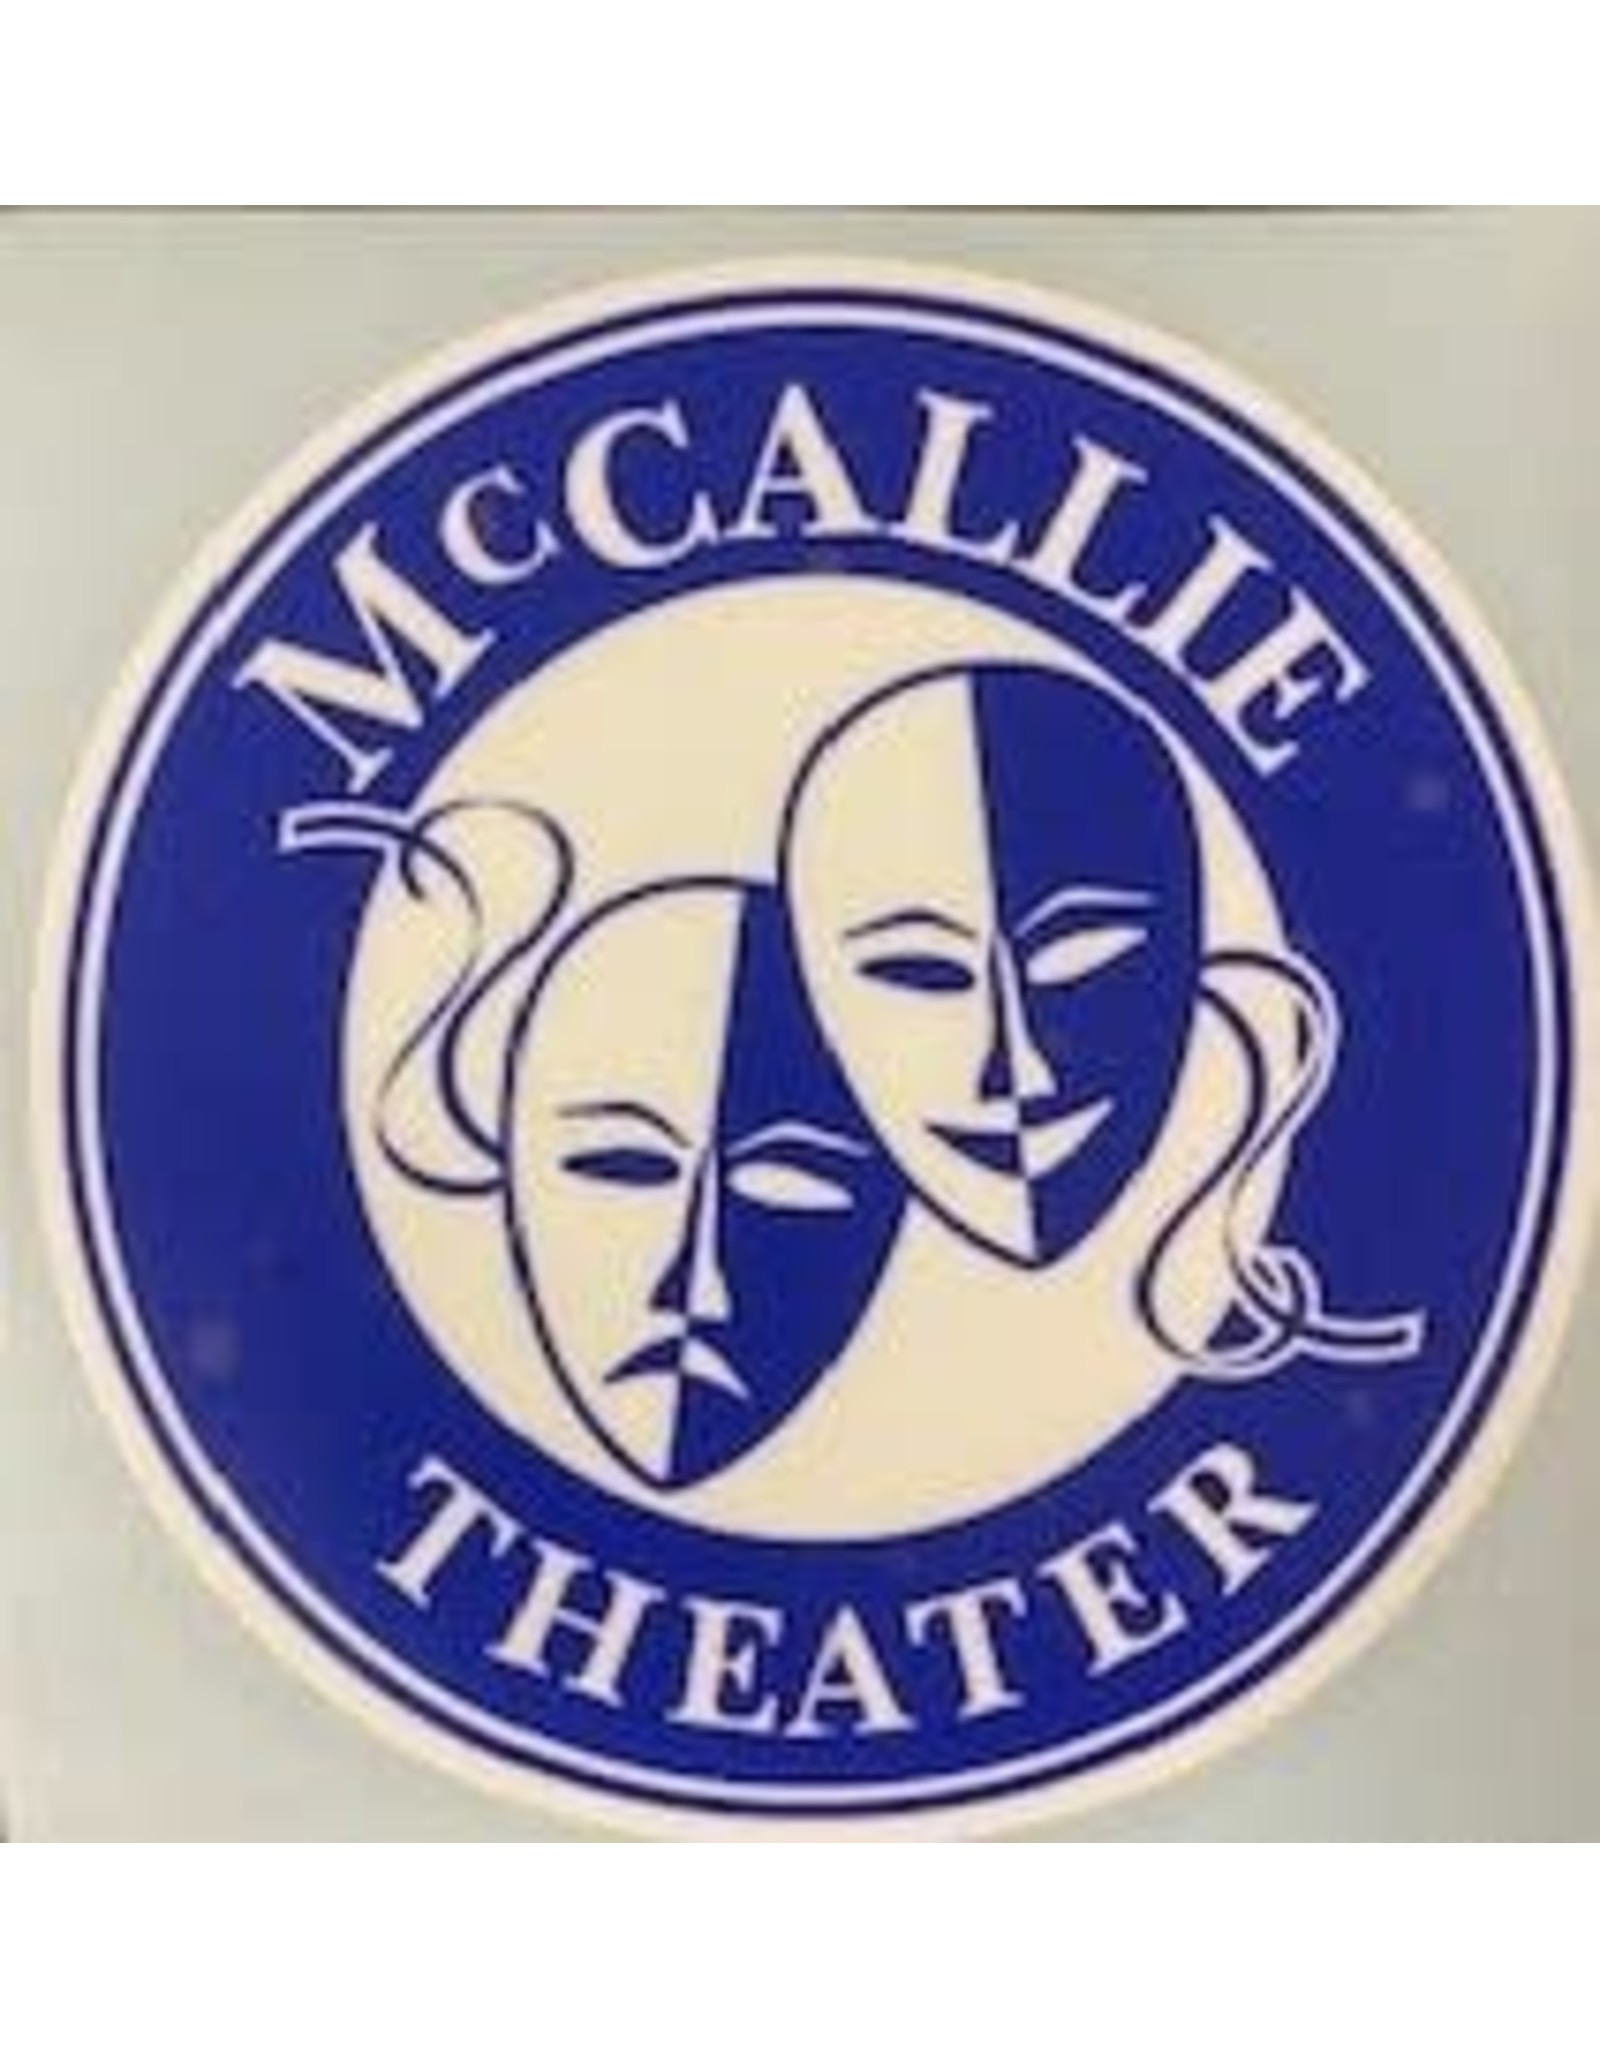 THEATER DECAL